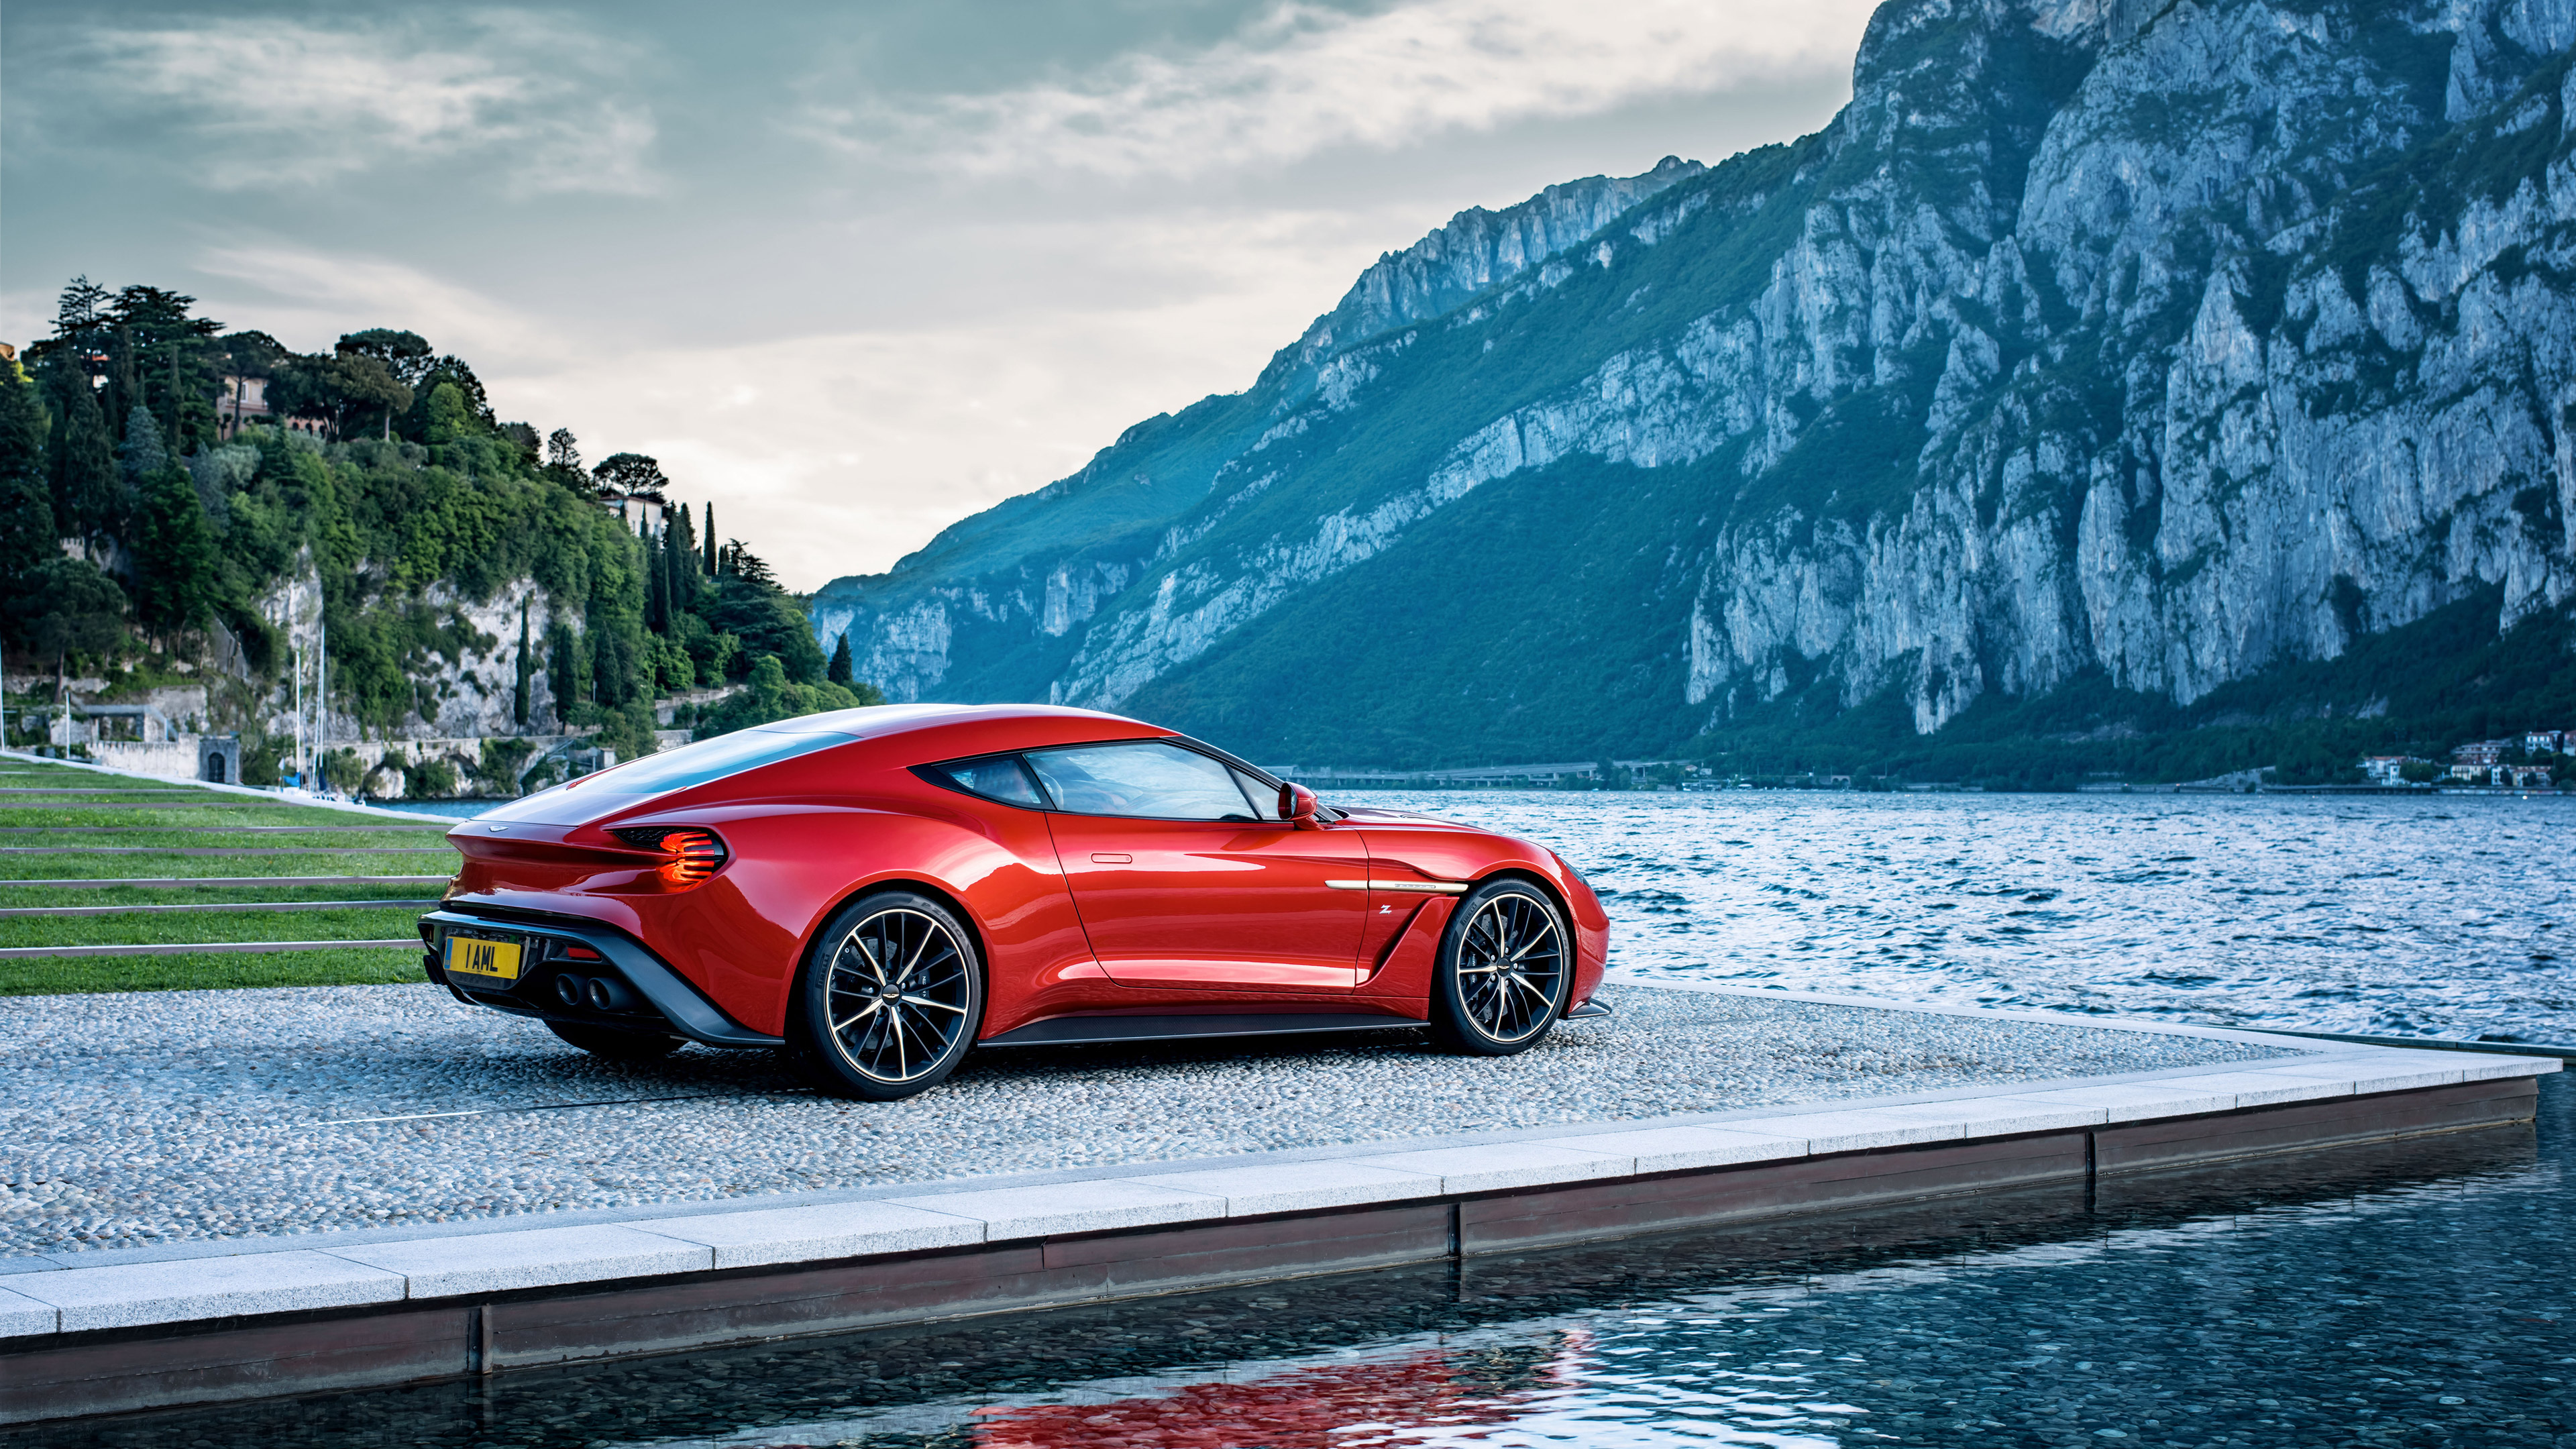 aston martin vanquish hd, hd cars, 4k wallpapers, images